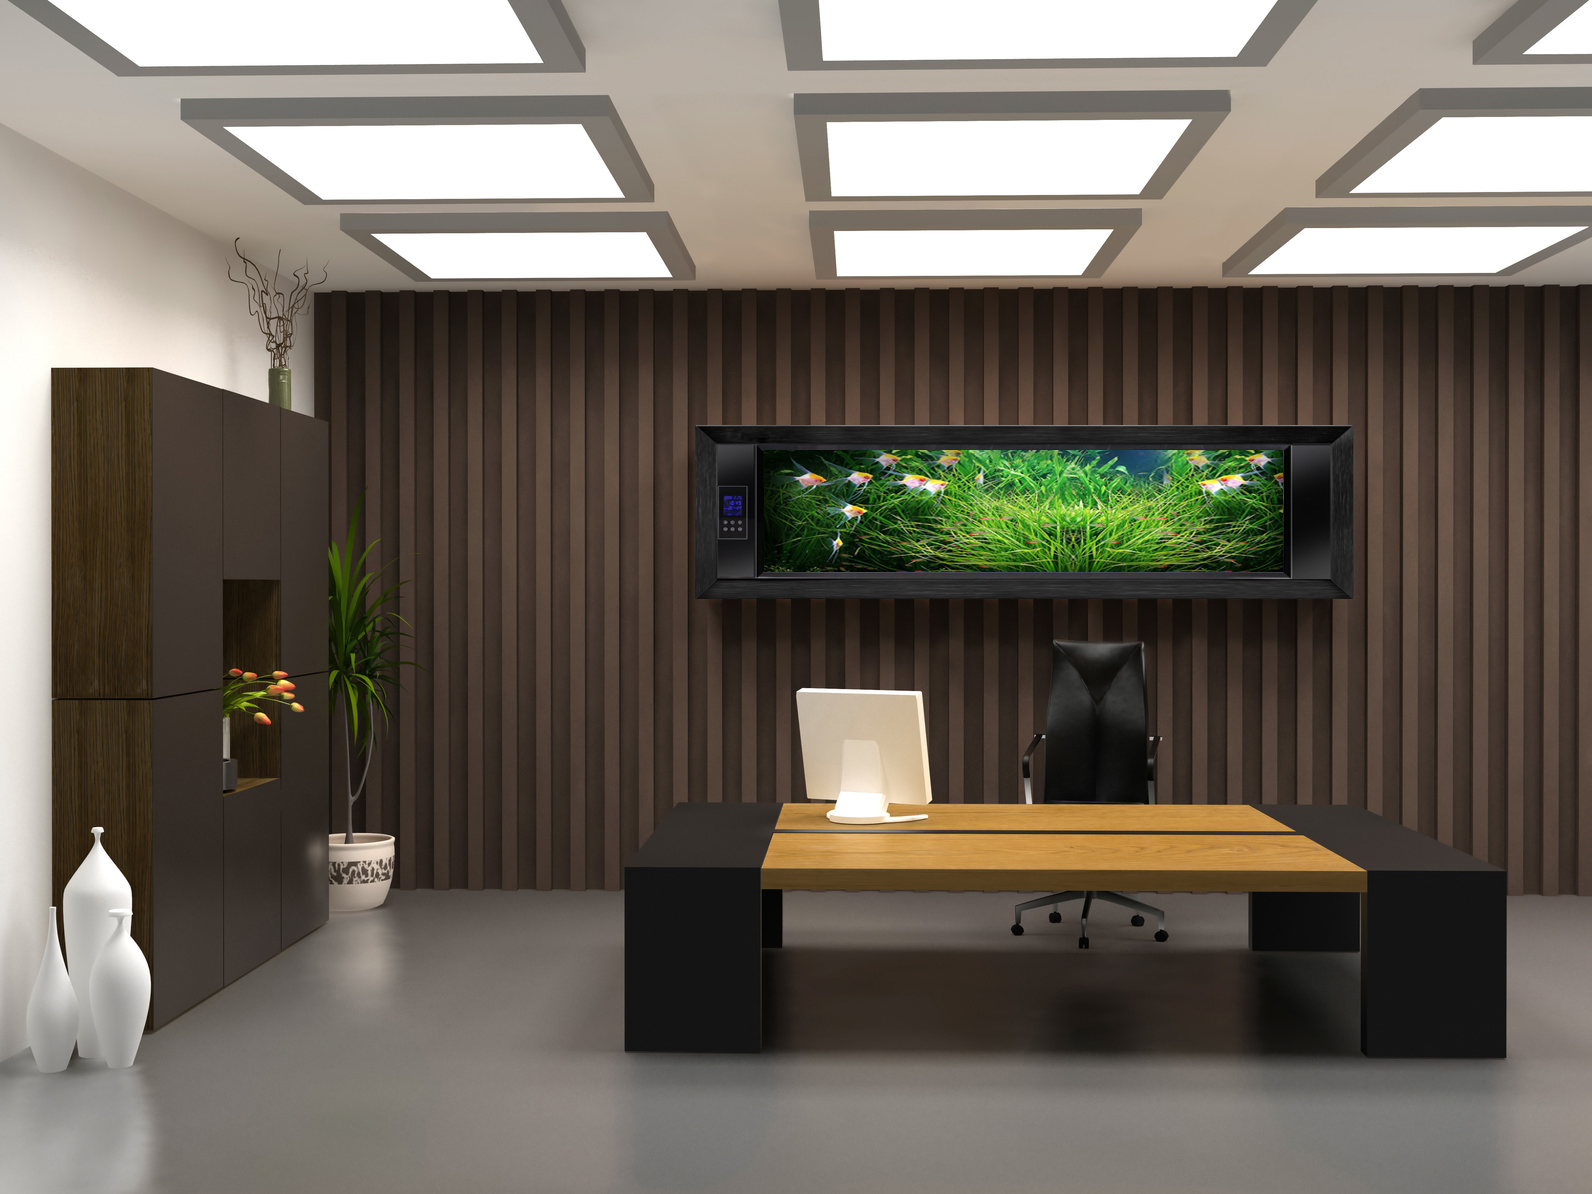 Elegant ceo office design bellisima for Interior design concept